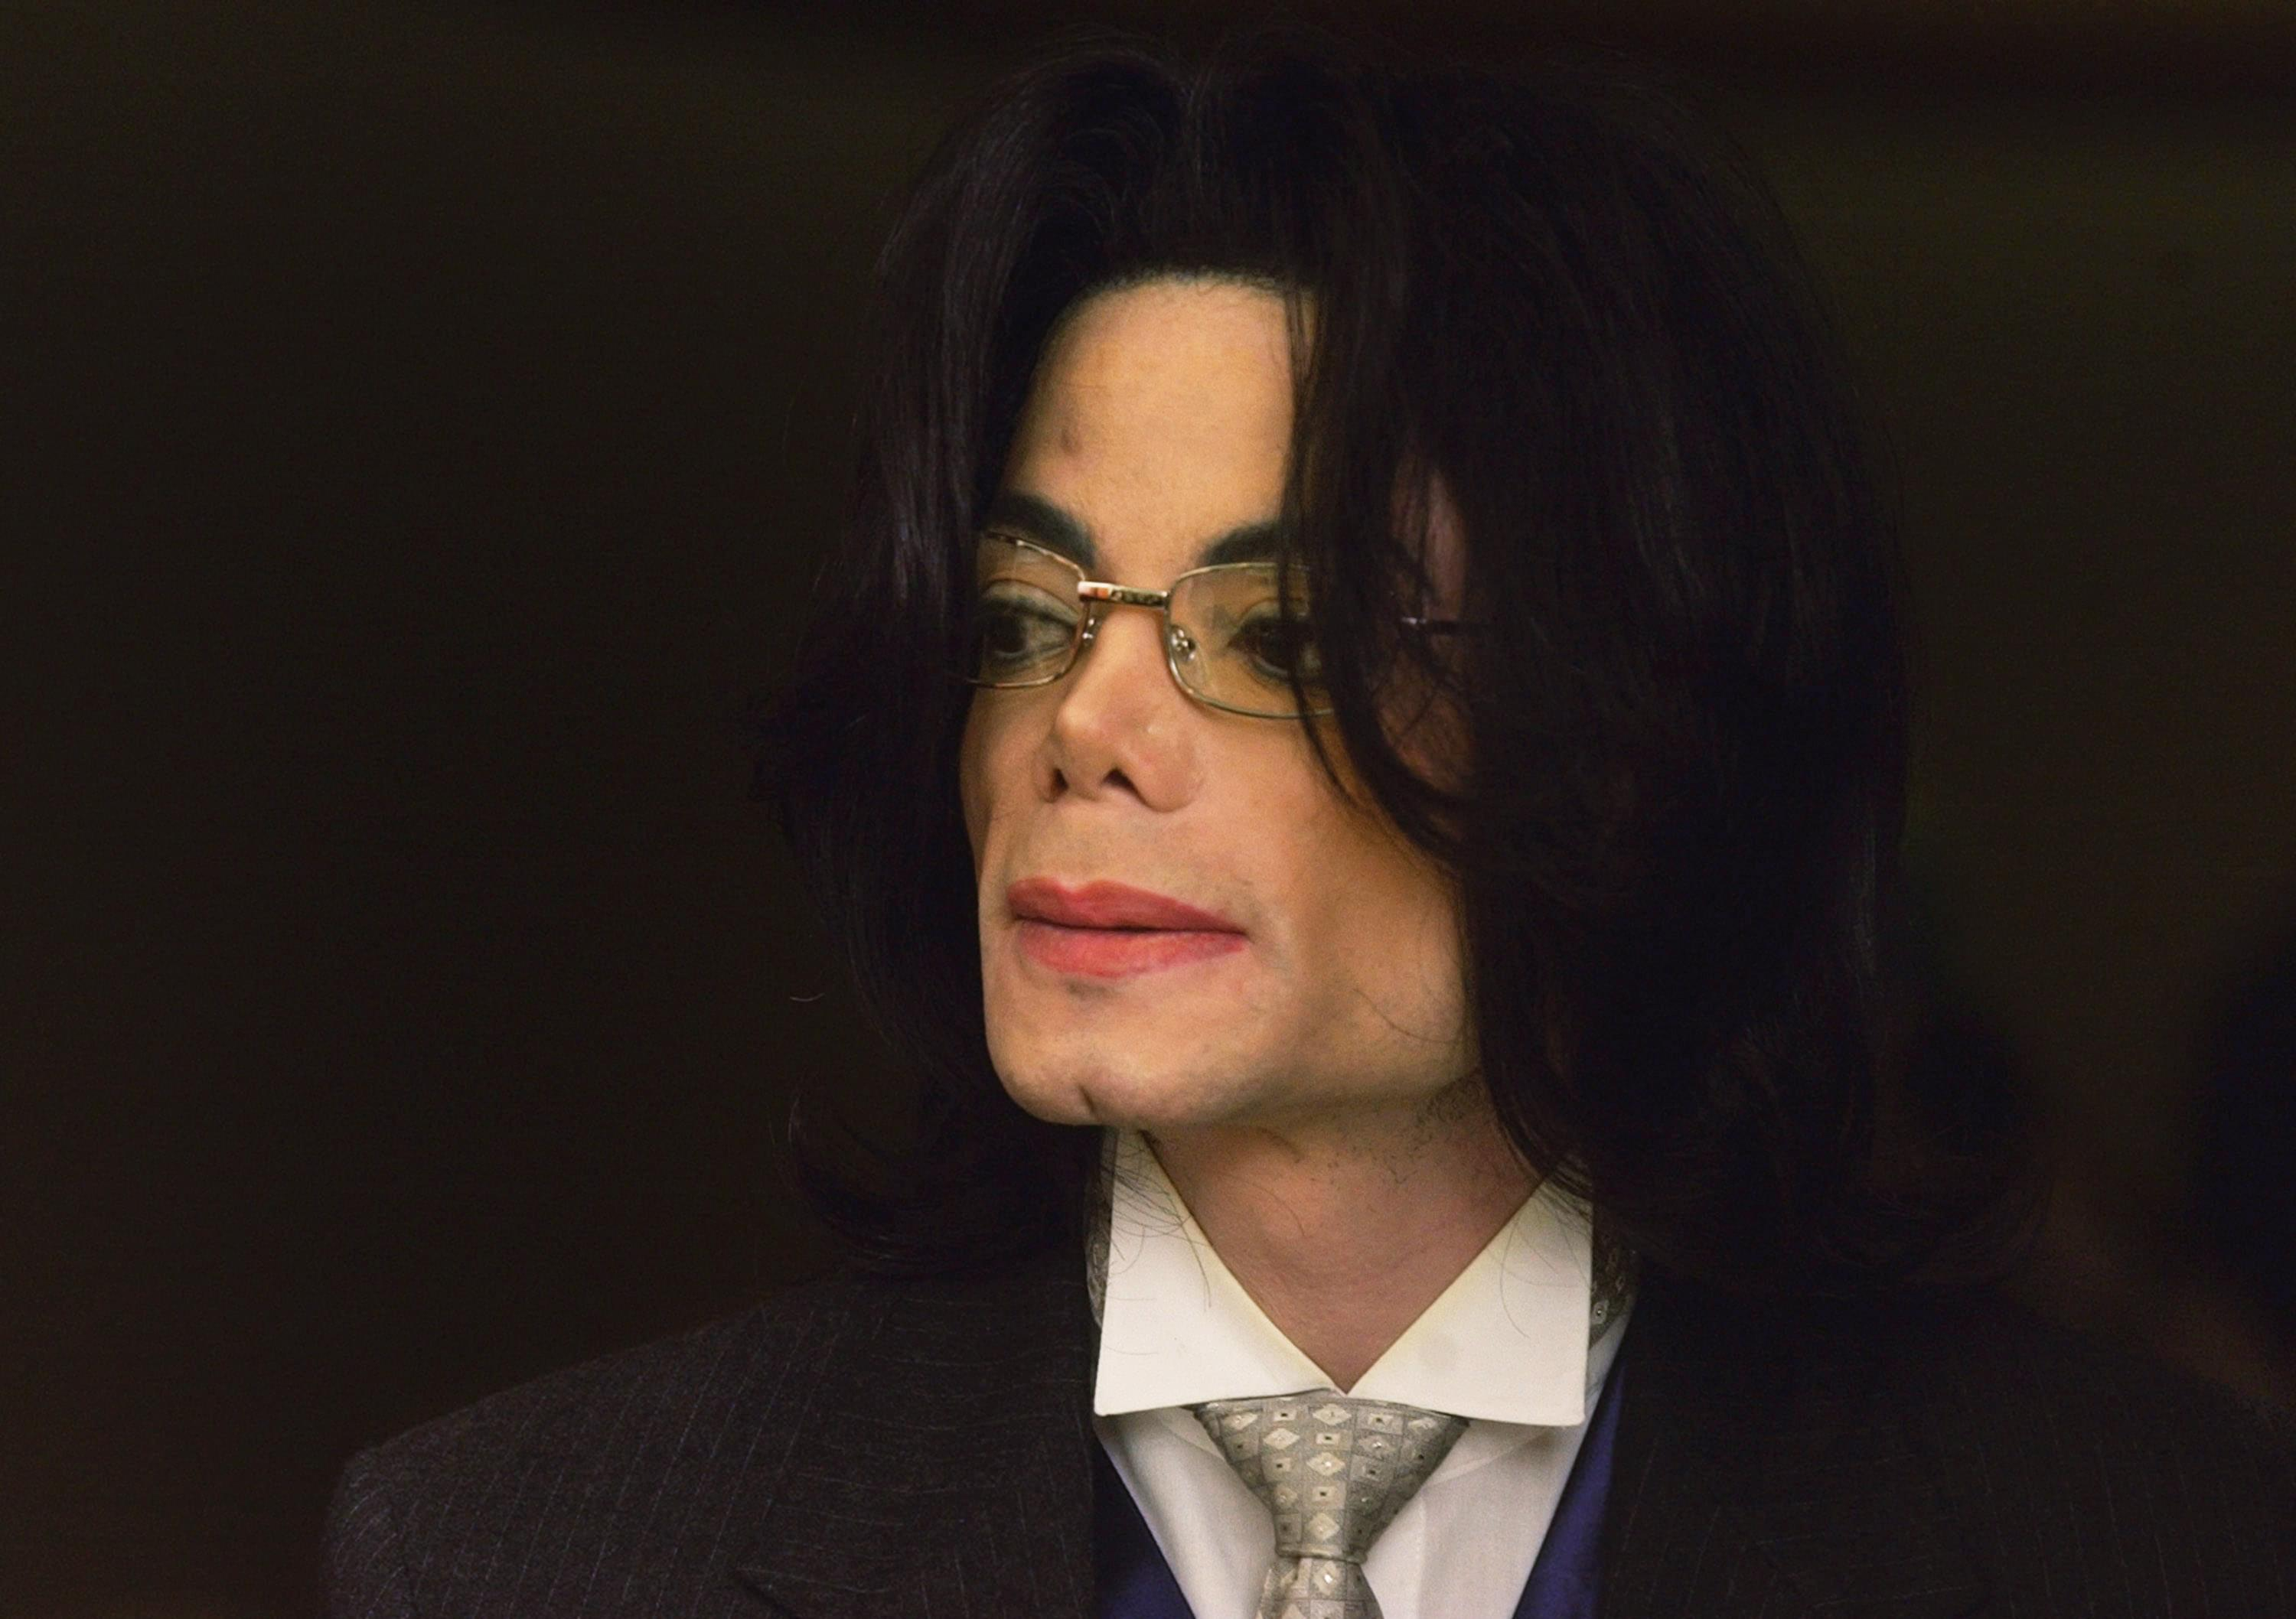 Michael Jackson Accuser Reportedly Tried To Auction Off His Memorabilia